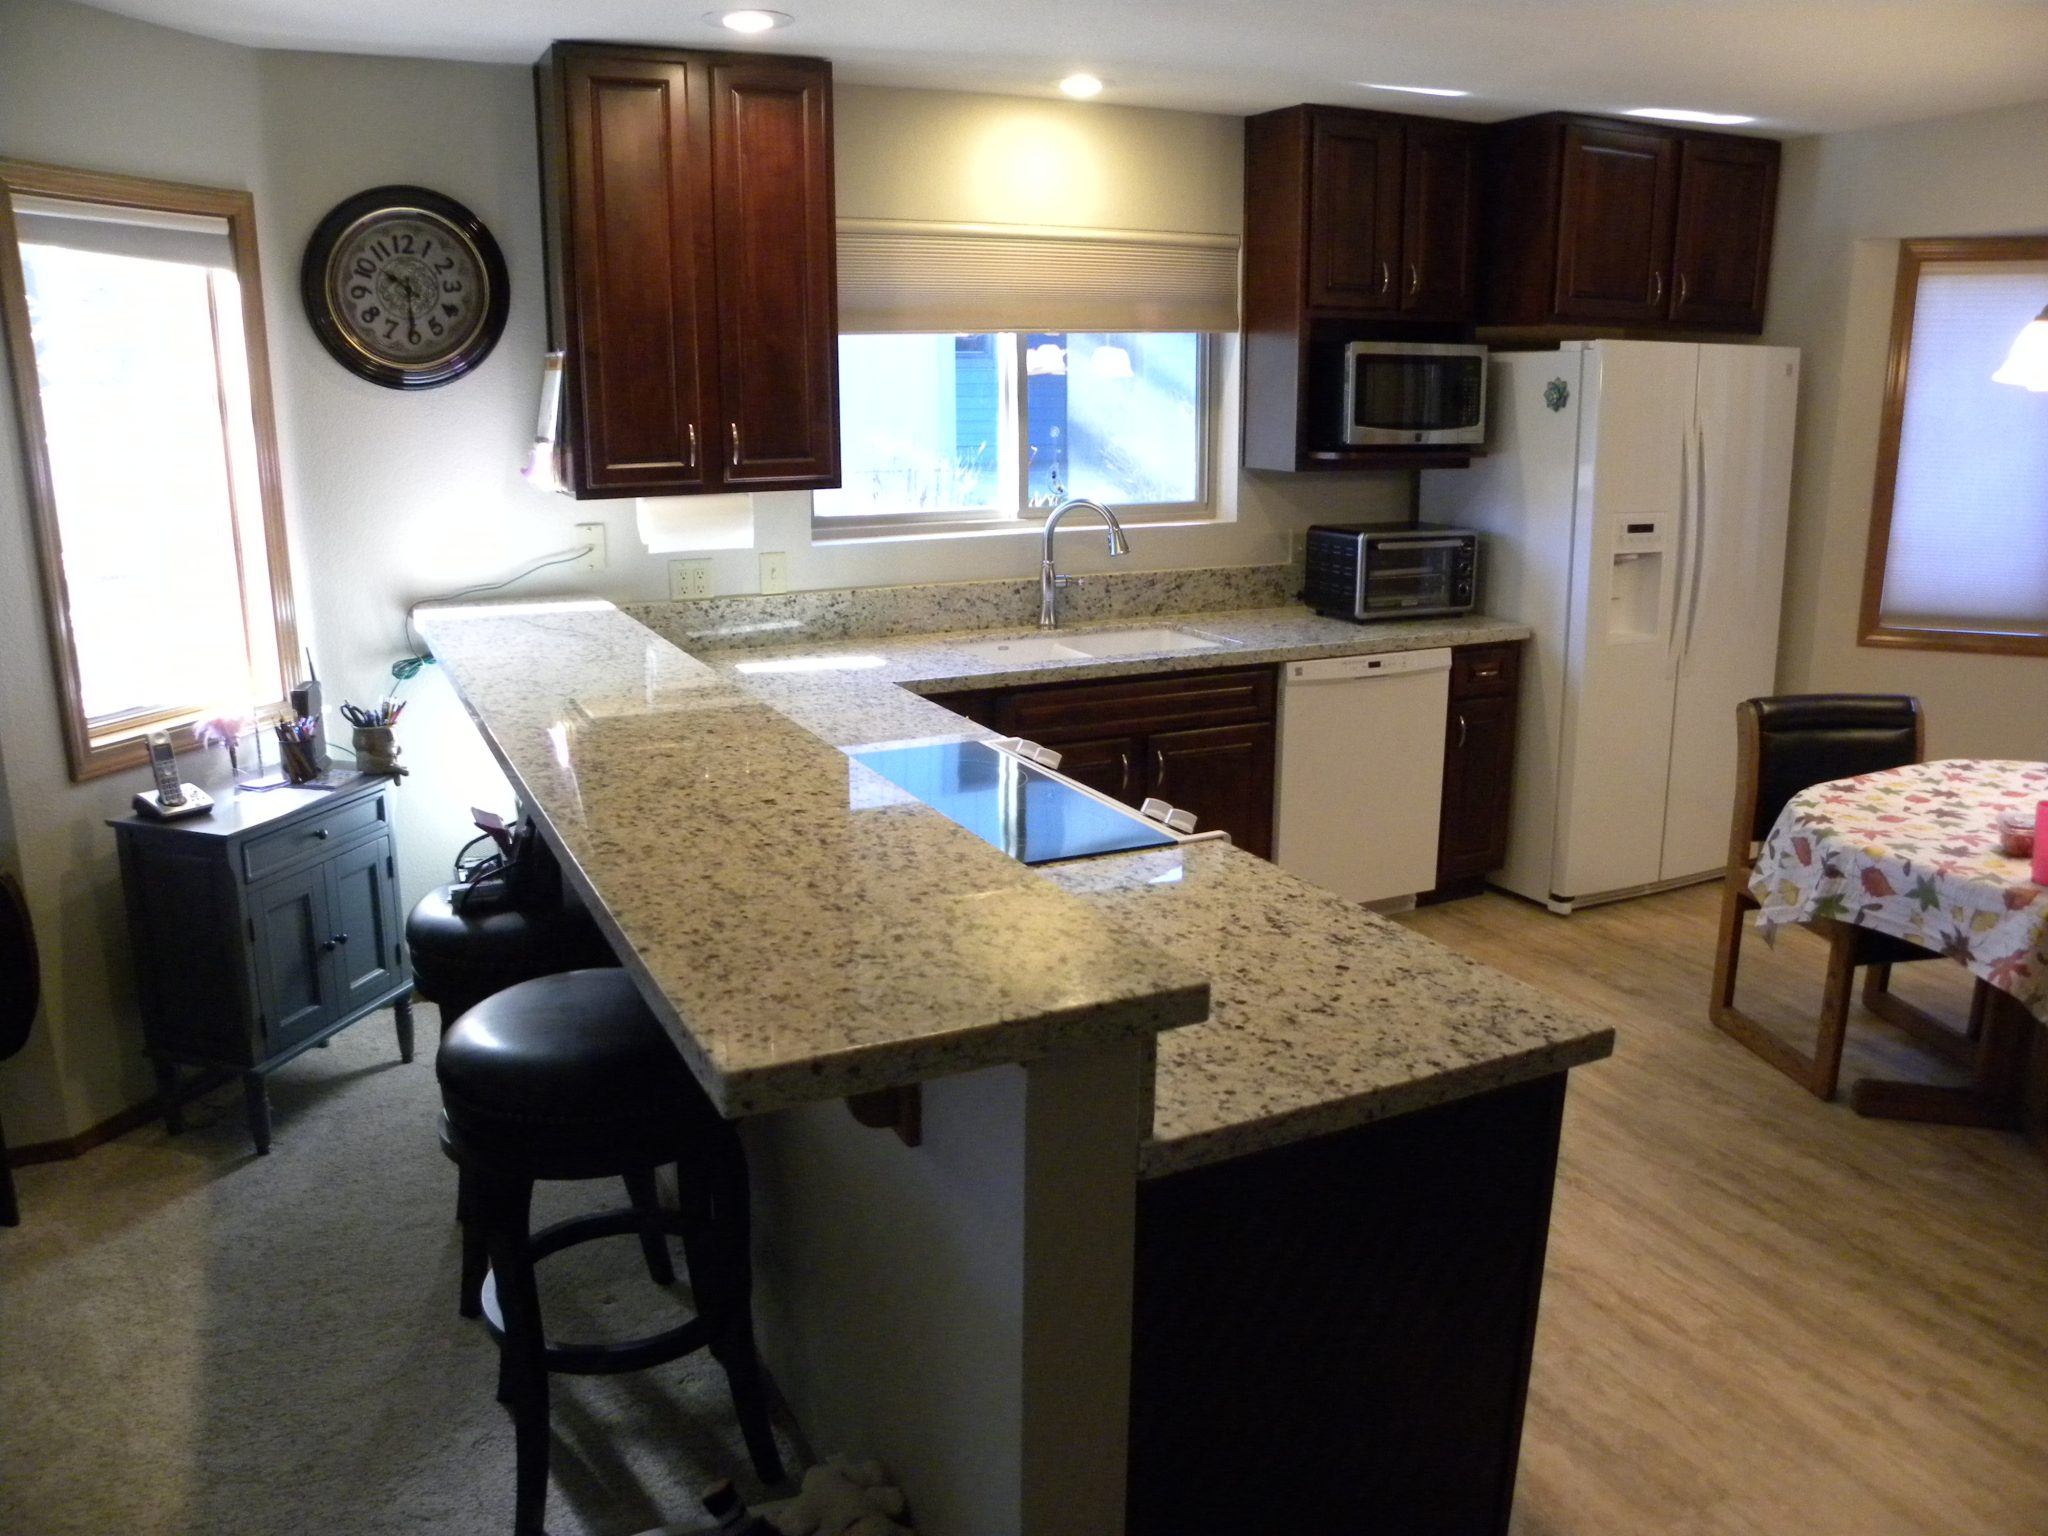 Newly remodeled kitchen with dark wooden cabinets and speckled white granite countertops